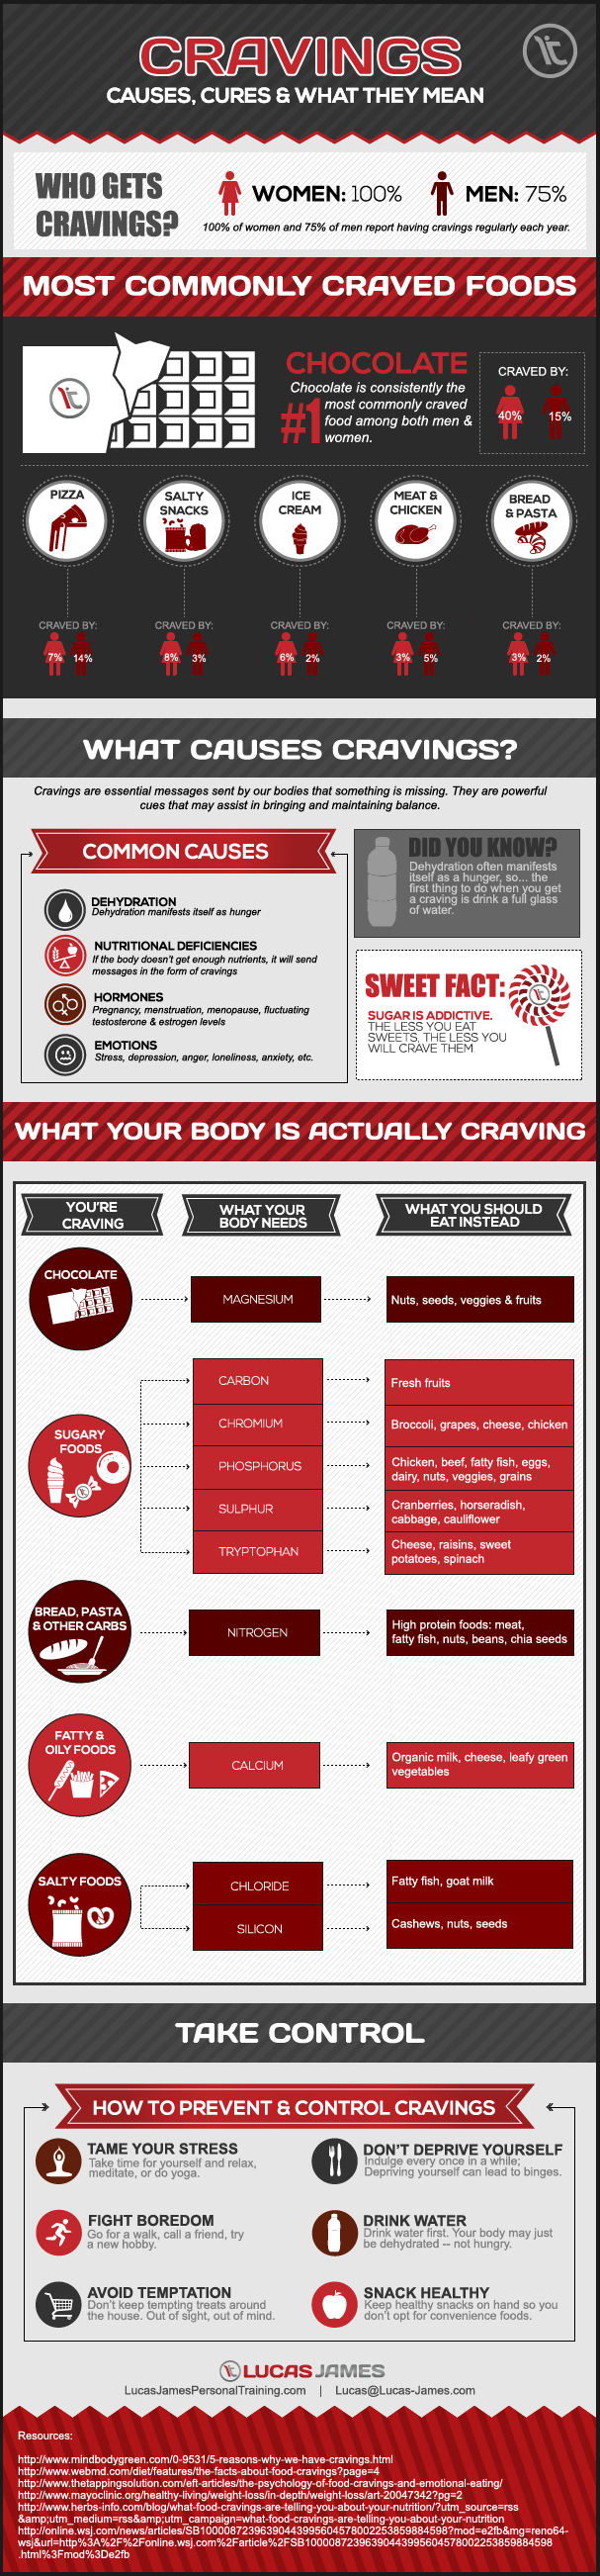 Cravings: Causes, Cures and What They Mean